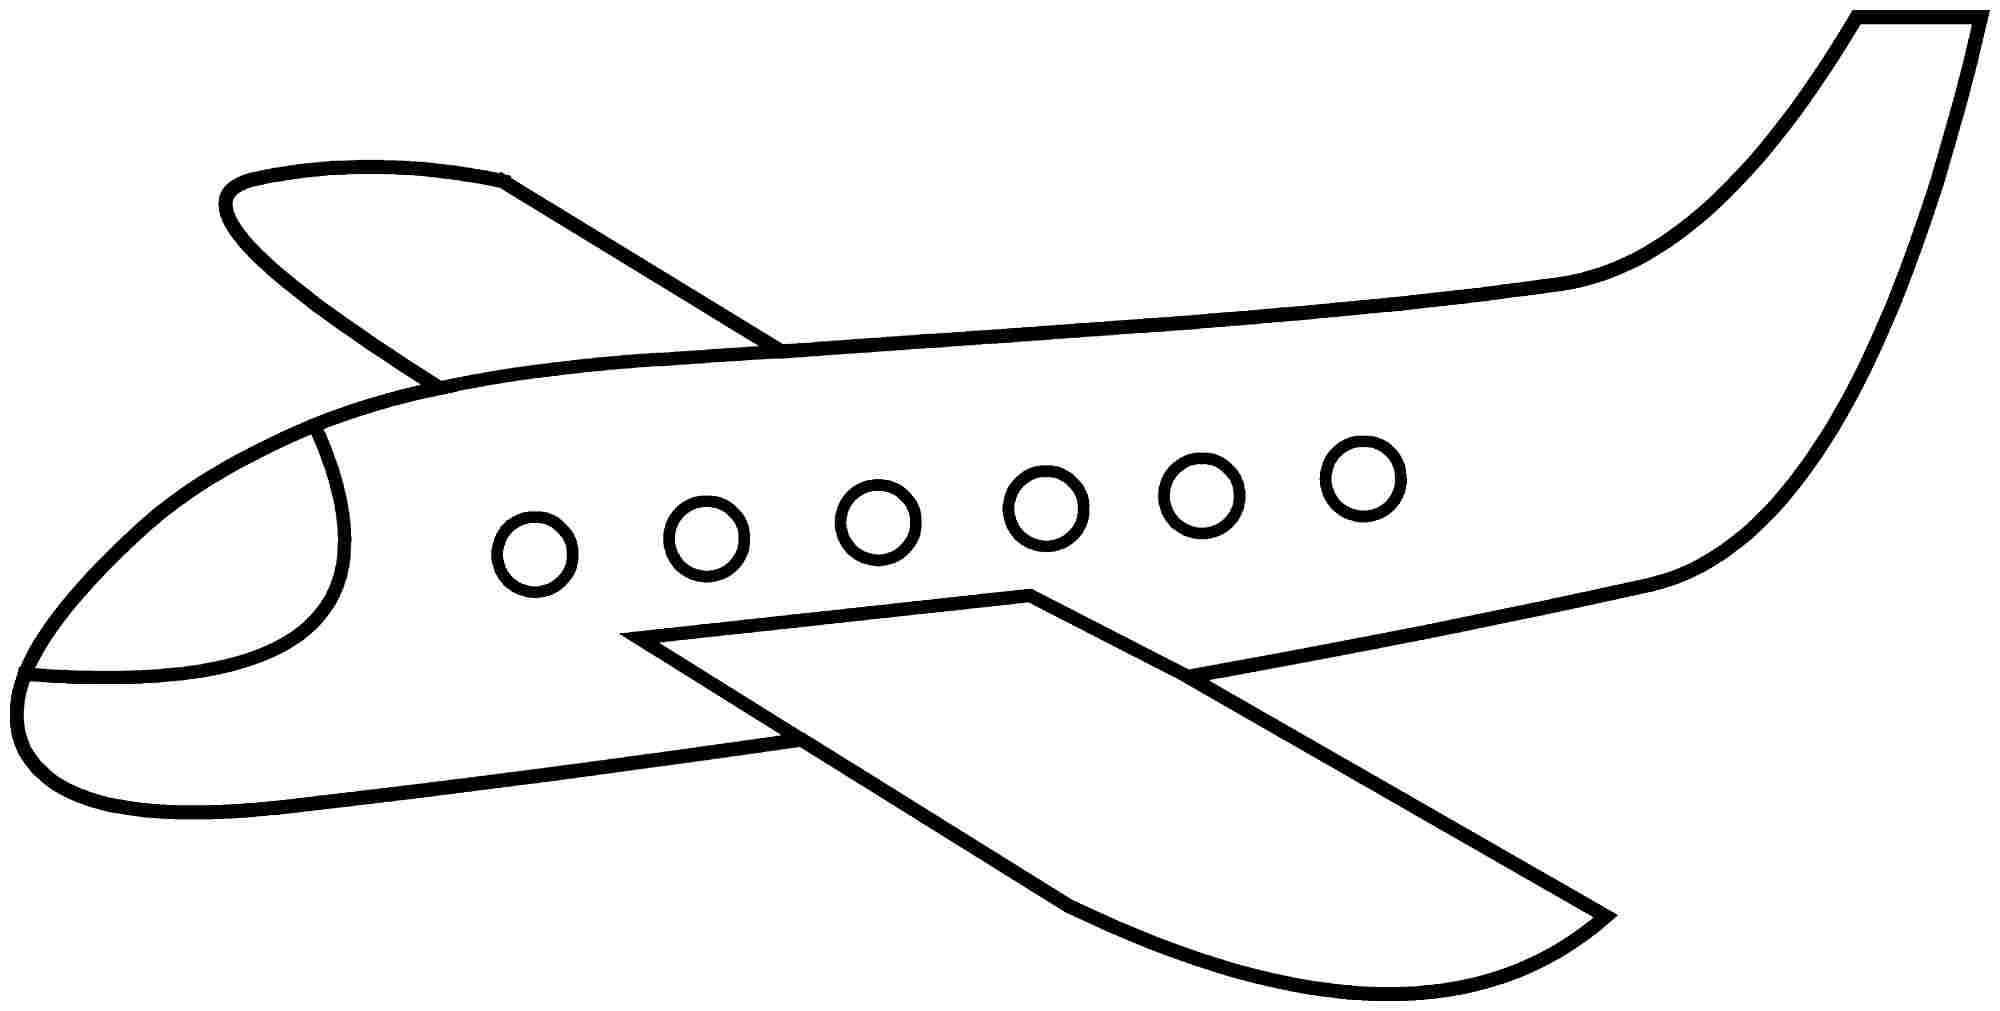 Coloring Pages Airplanes : Airplane coloring pages preschool for all